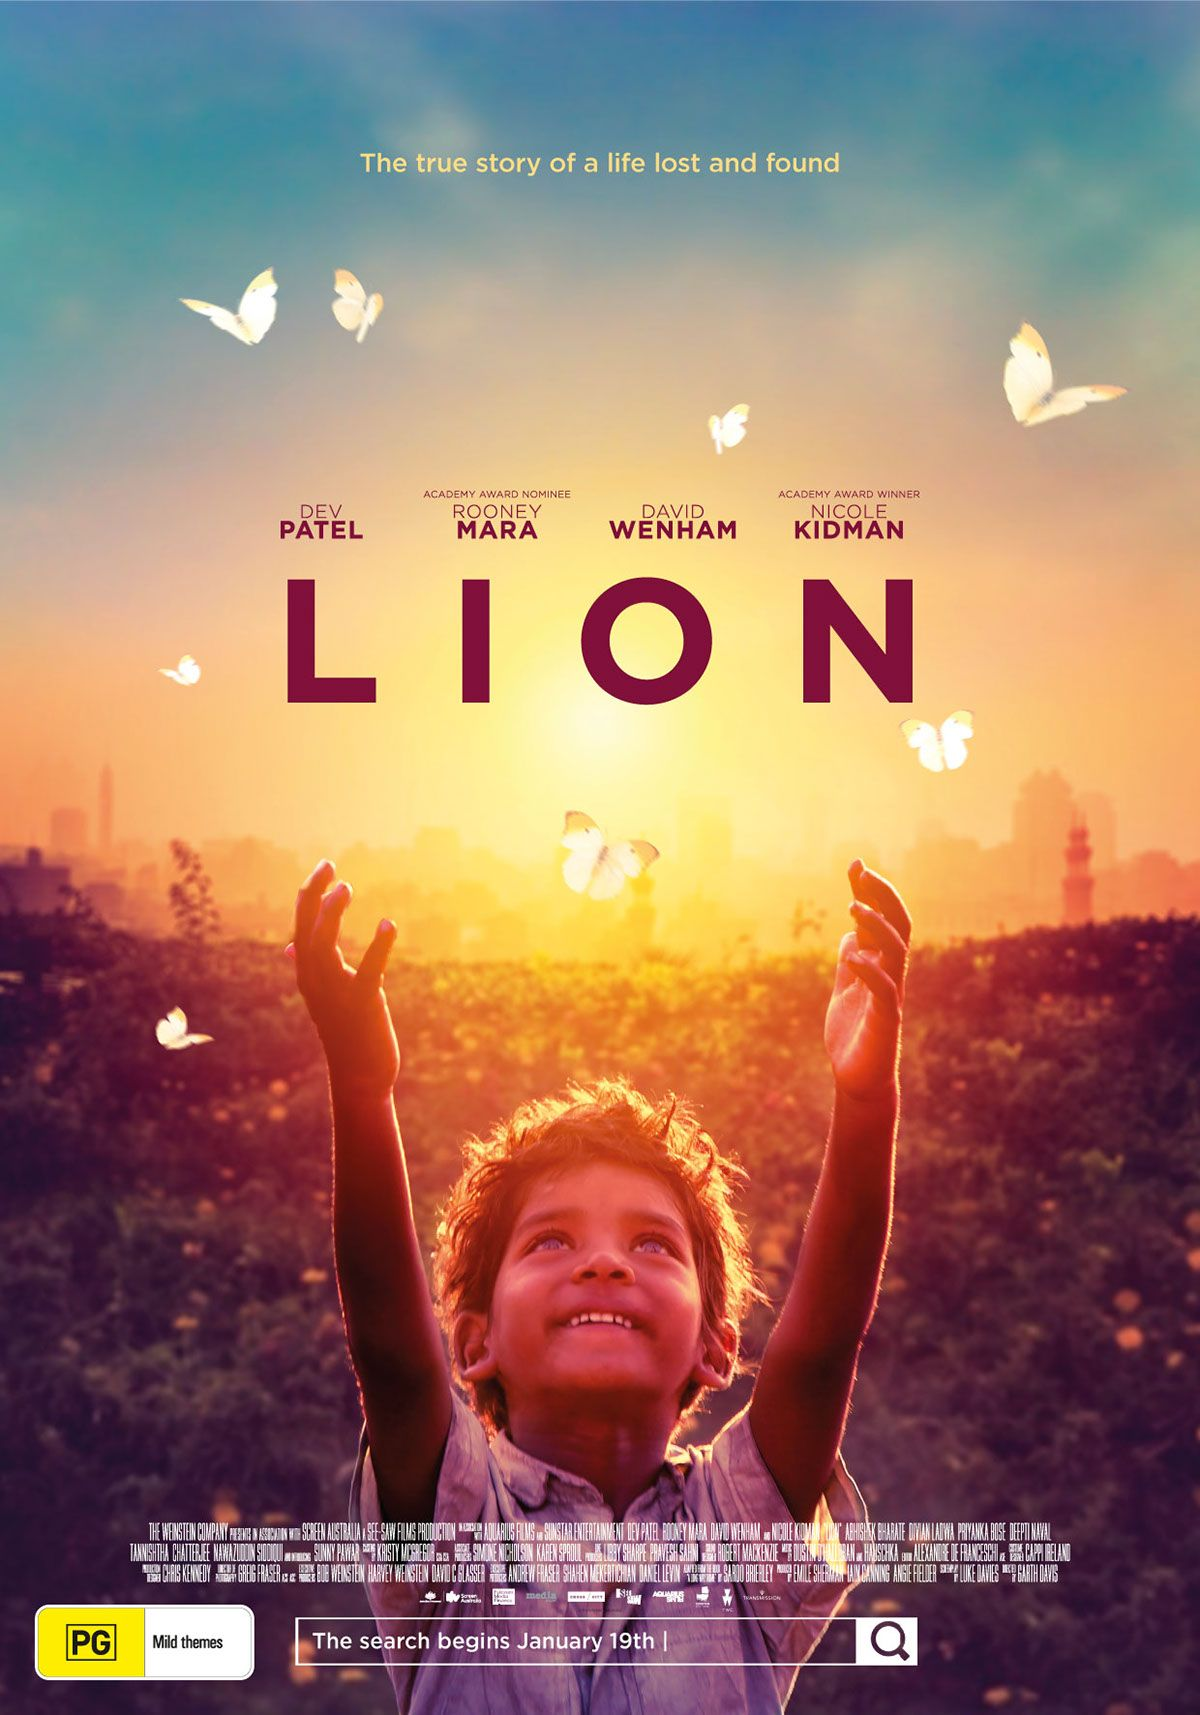 Lion 2016 A Biographical Drama Film Directed By Garth Davis And Written By Luke Davies Based On The Non Fiction Book A Long W Film Afisleri Film Romanlar